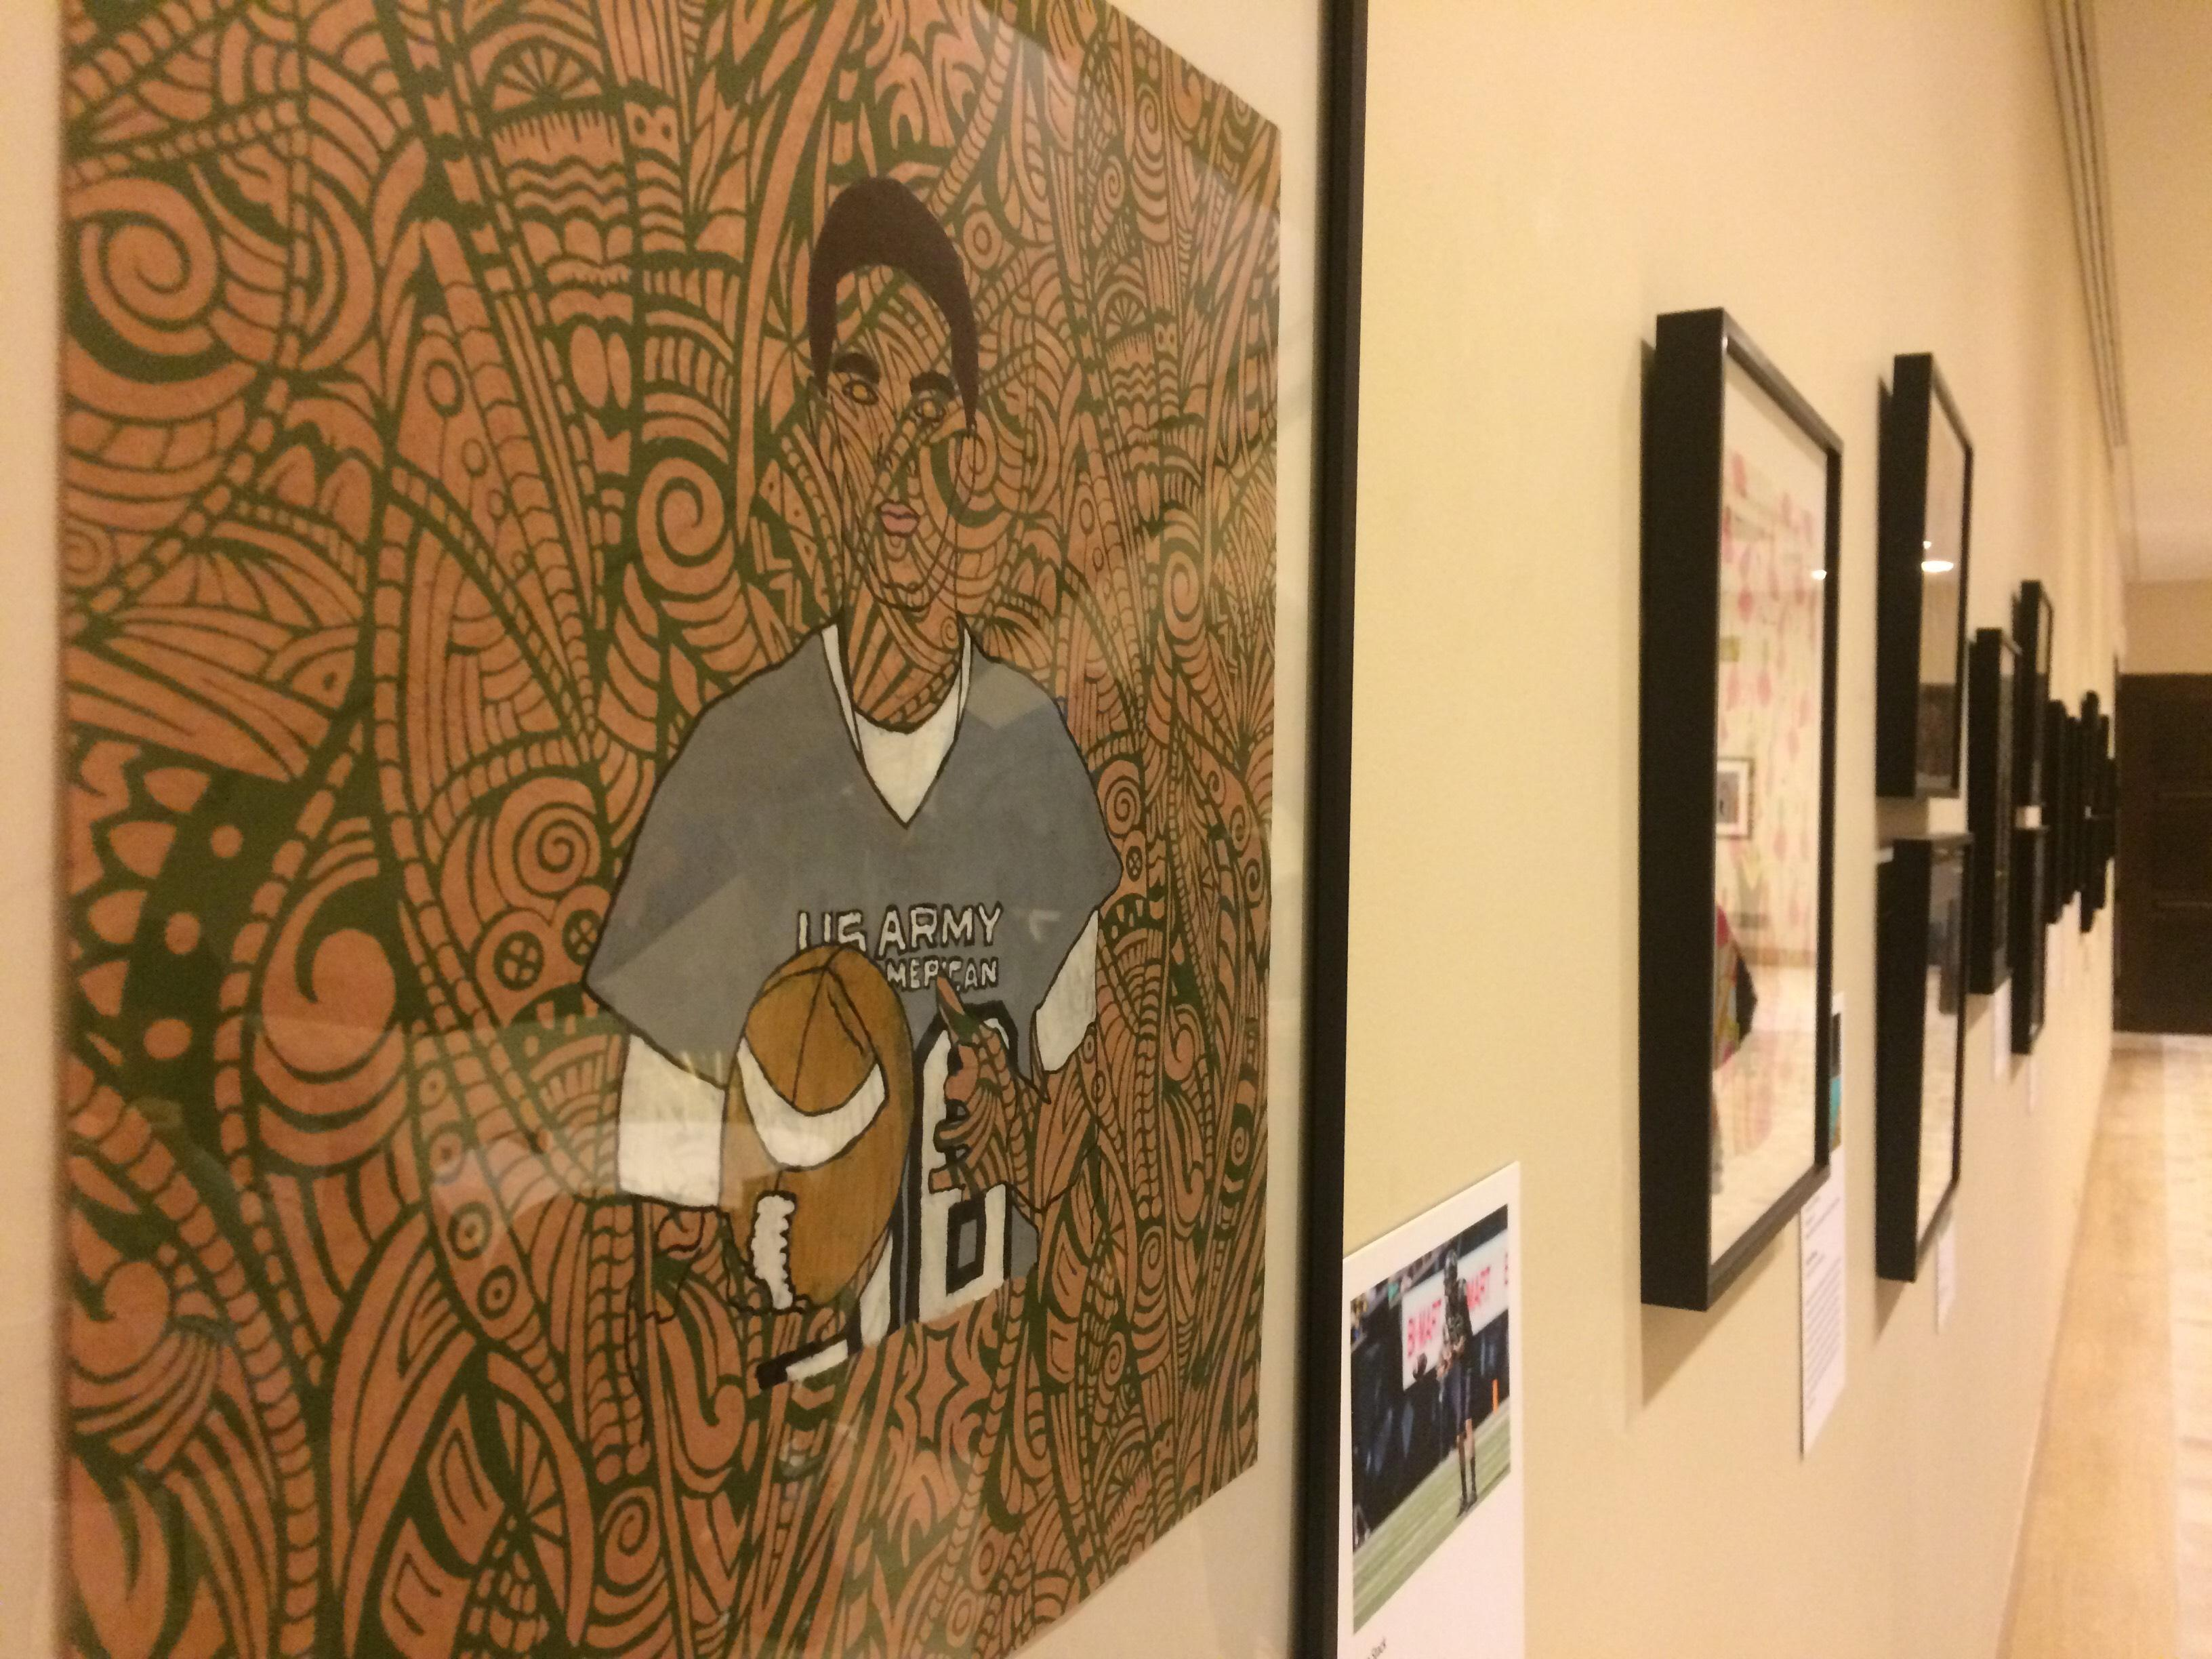 Art of the Athlete exhibit on display at Jordan Schnitzer Museum of Art